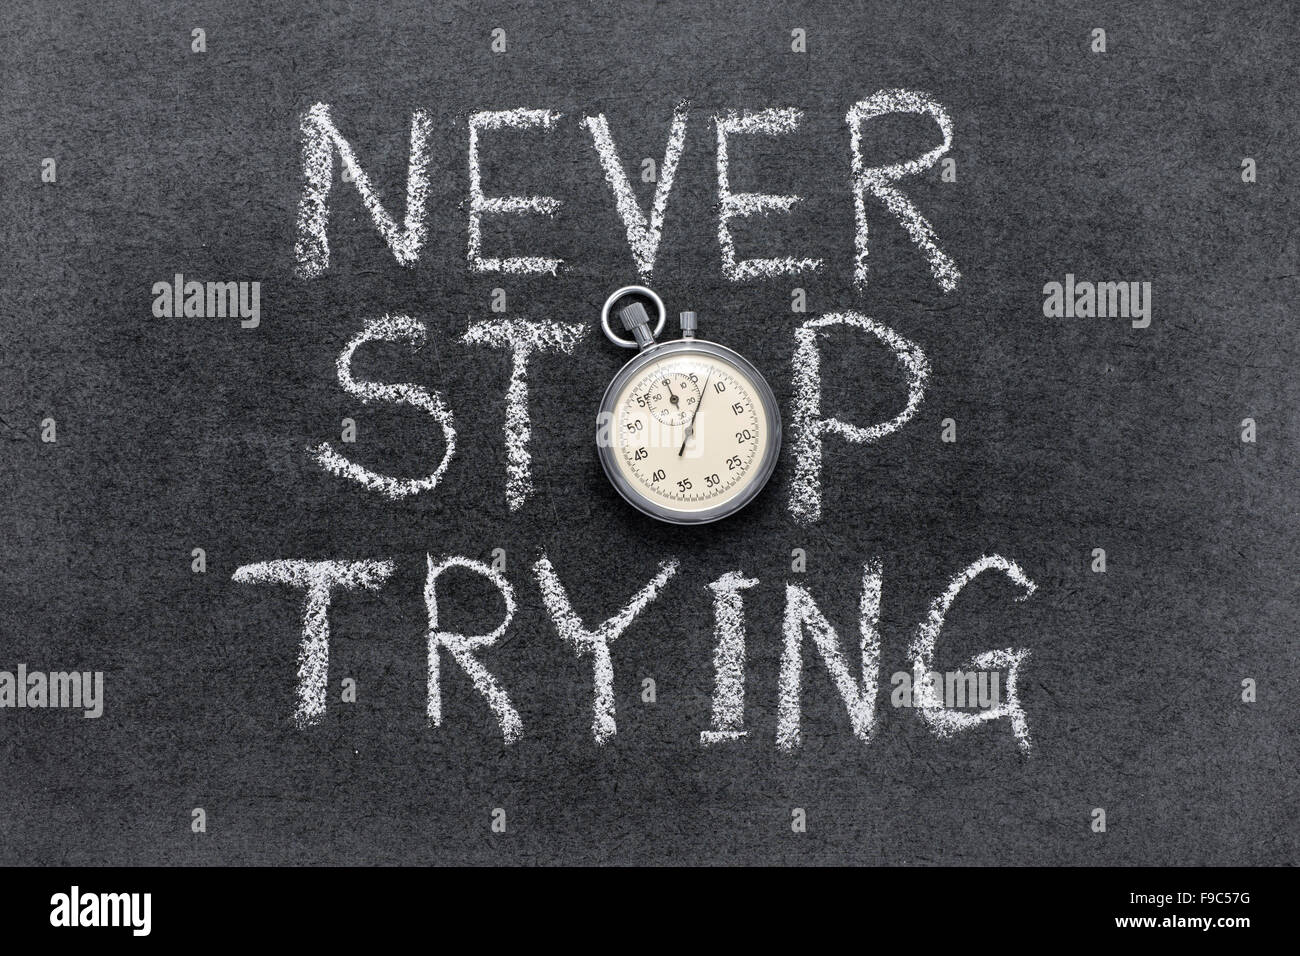 never stop trying phrase handwritten on chalkboard with vintage precise stopwatch used instead of O - Stock Image